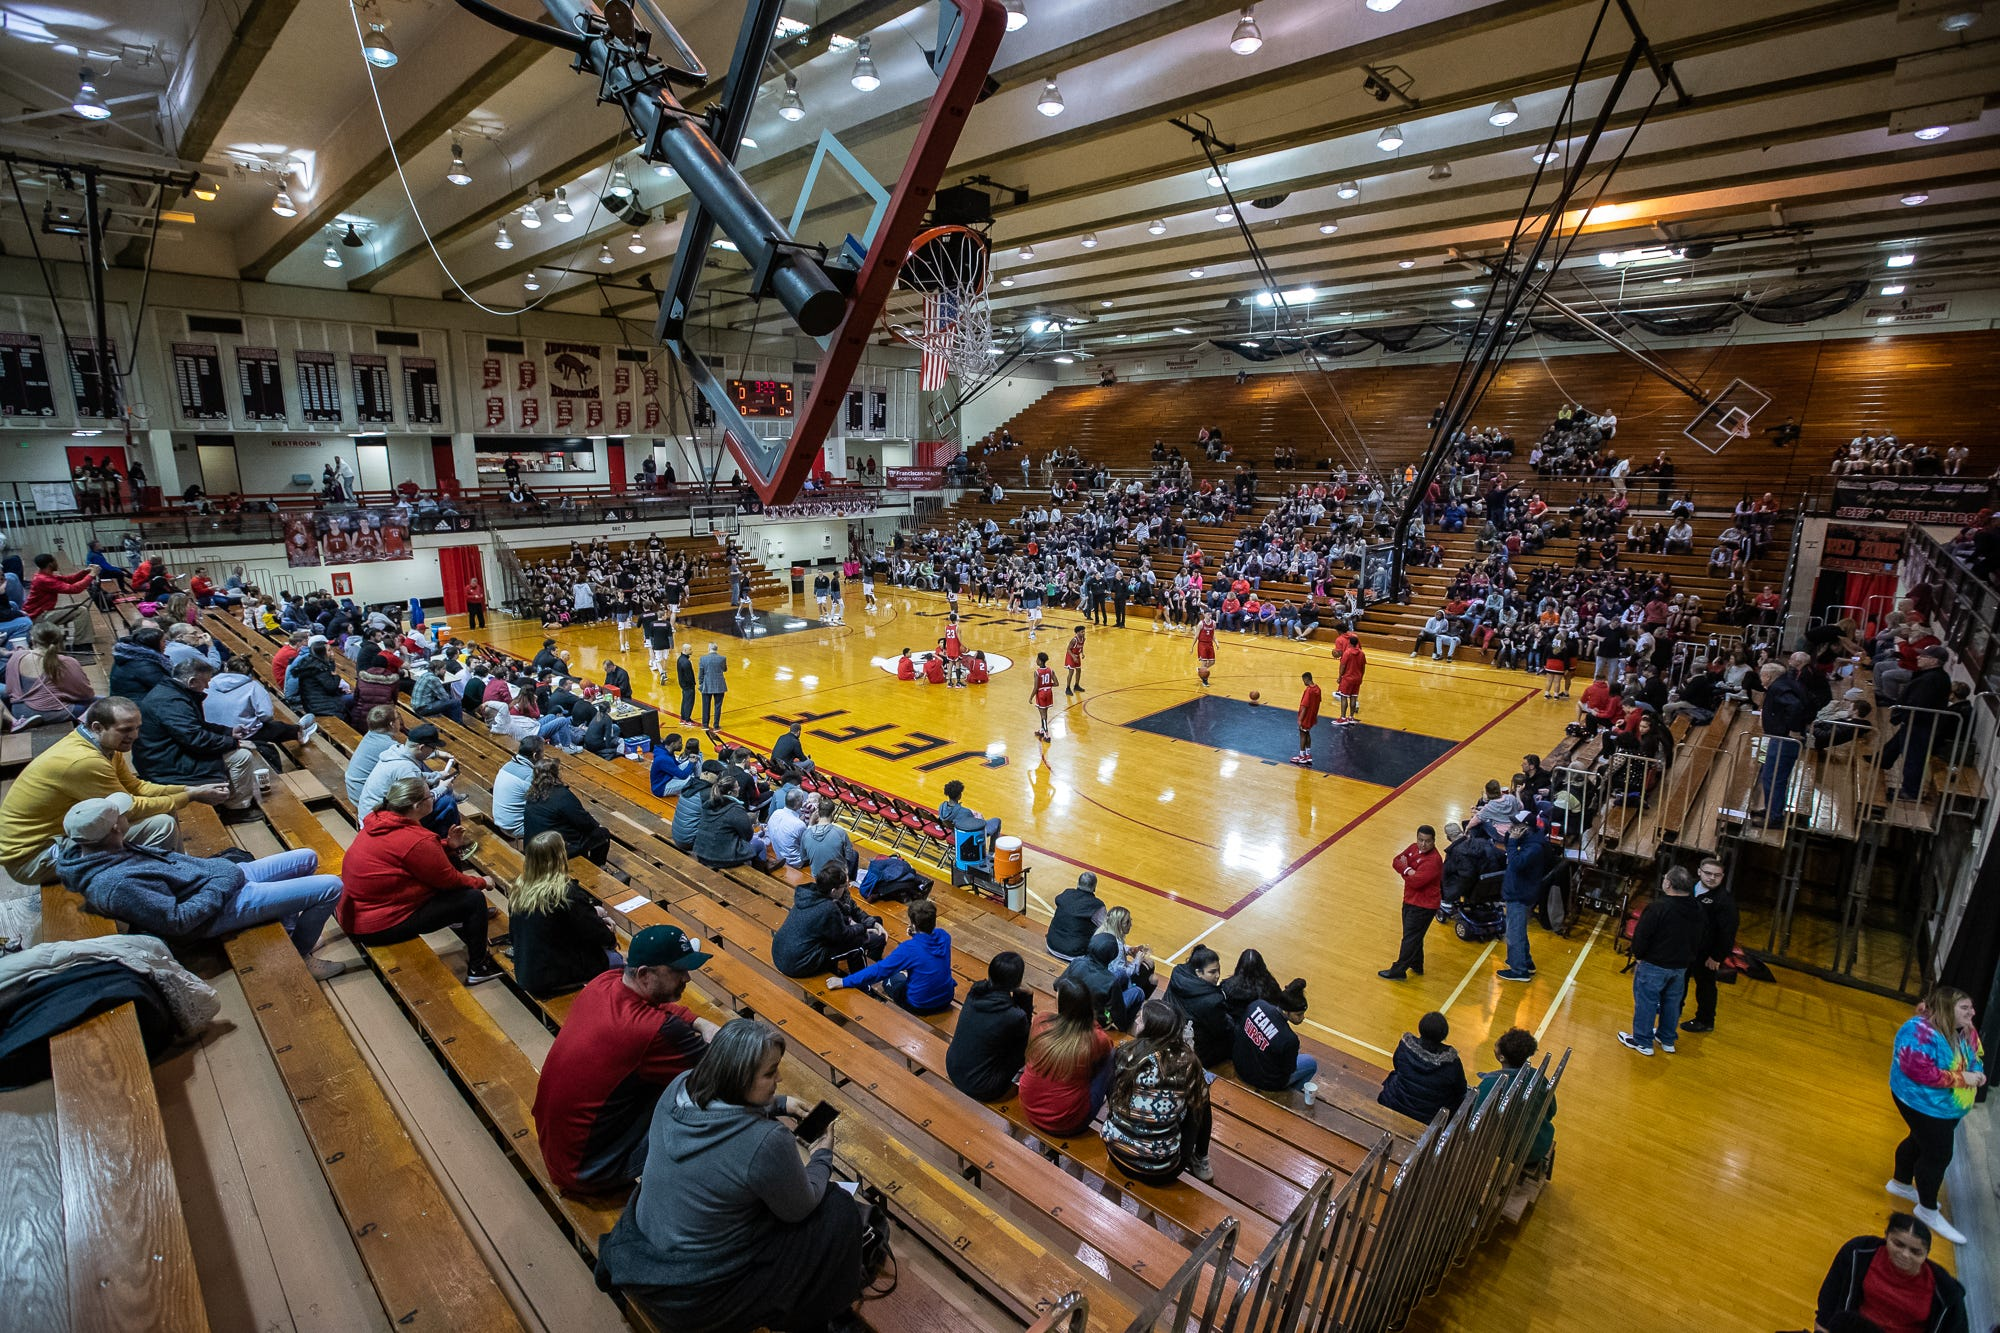 Fans watch as the Lafayette Jefferson Bronchos warm up for their game against the Richmond Red Devils at Jefferson High School's Marion Crawley Athletic Center on Friday, Feb. 21, 2020.